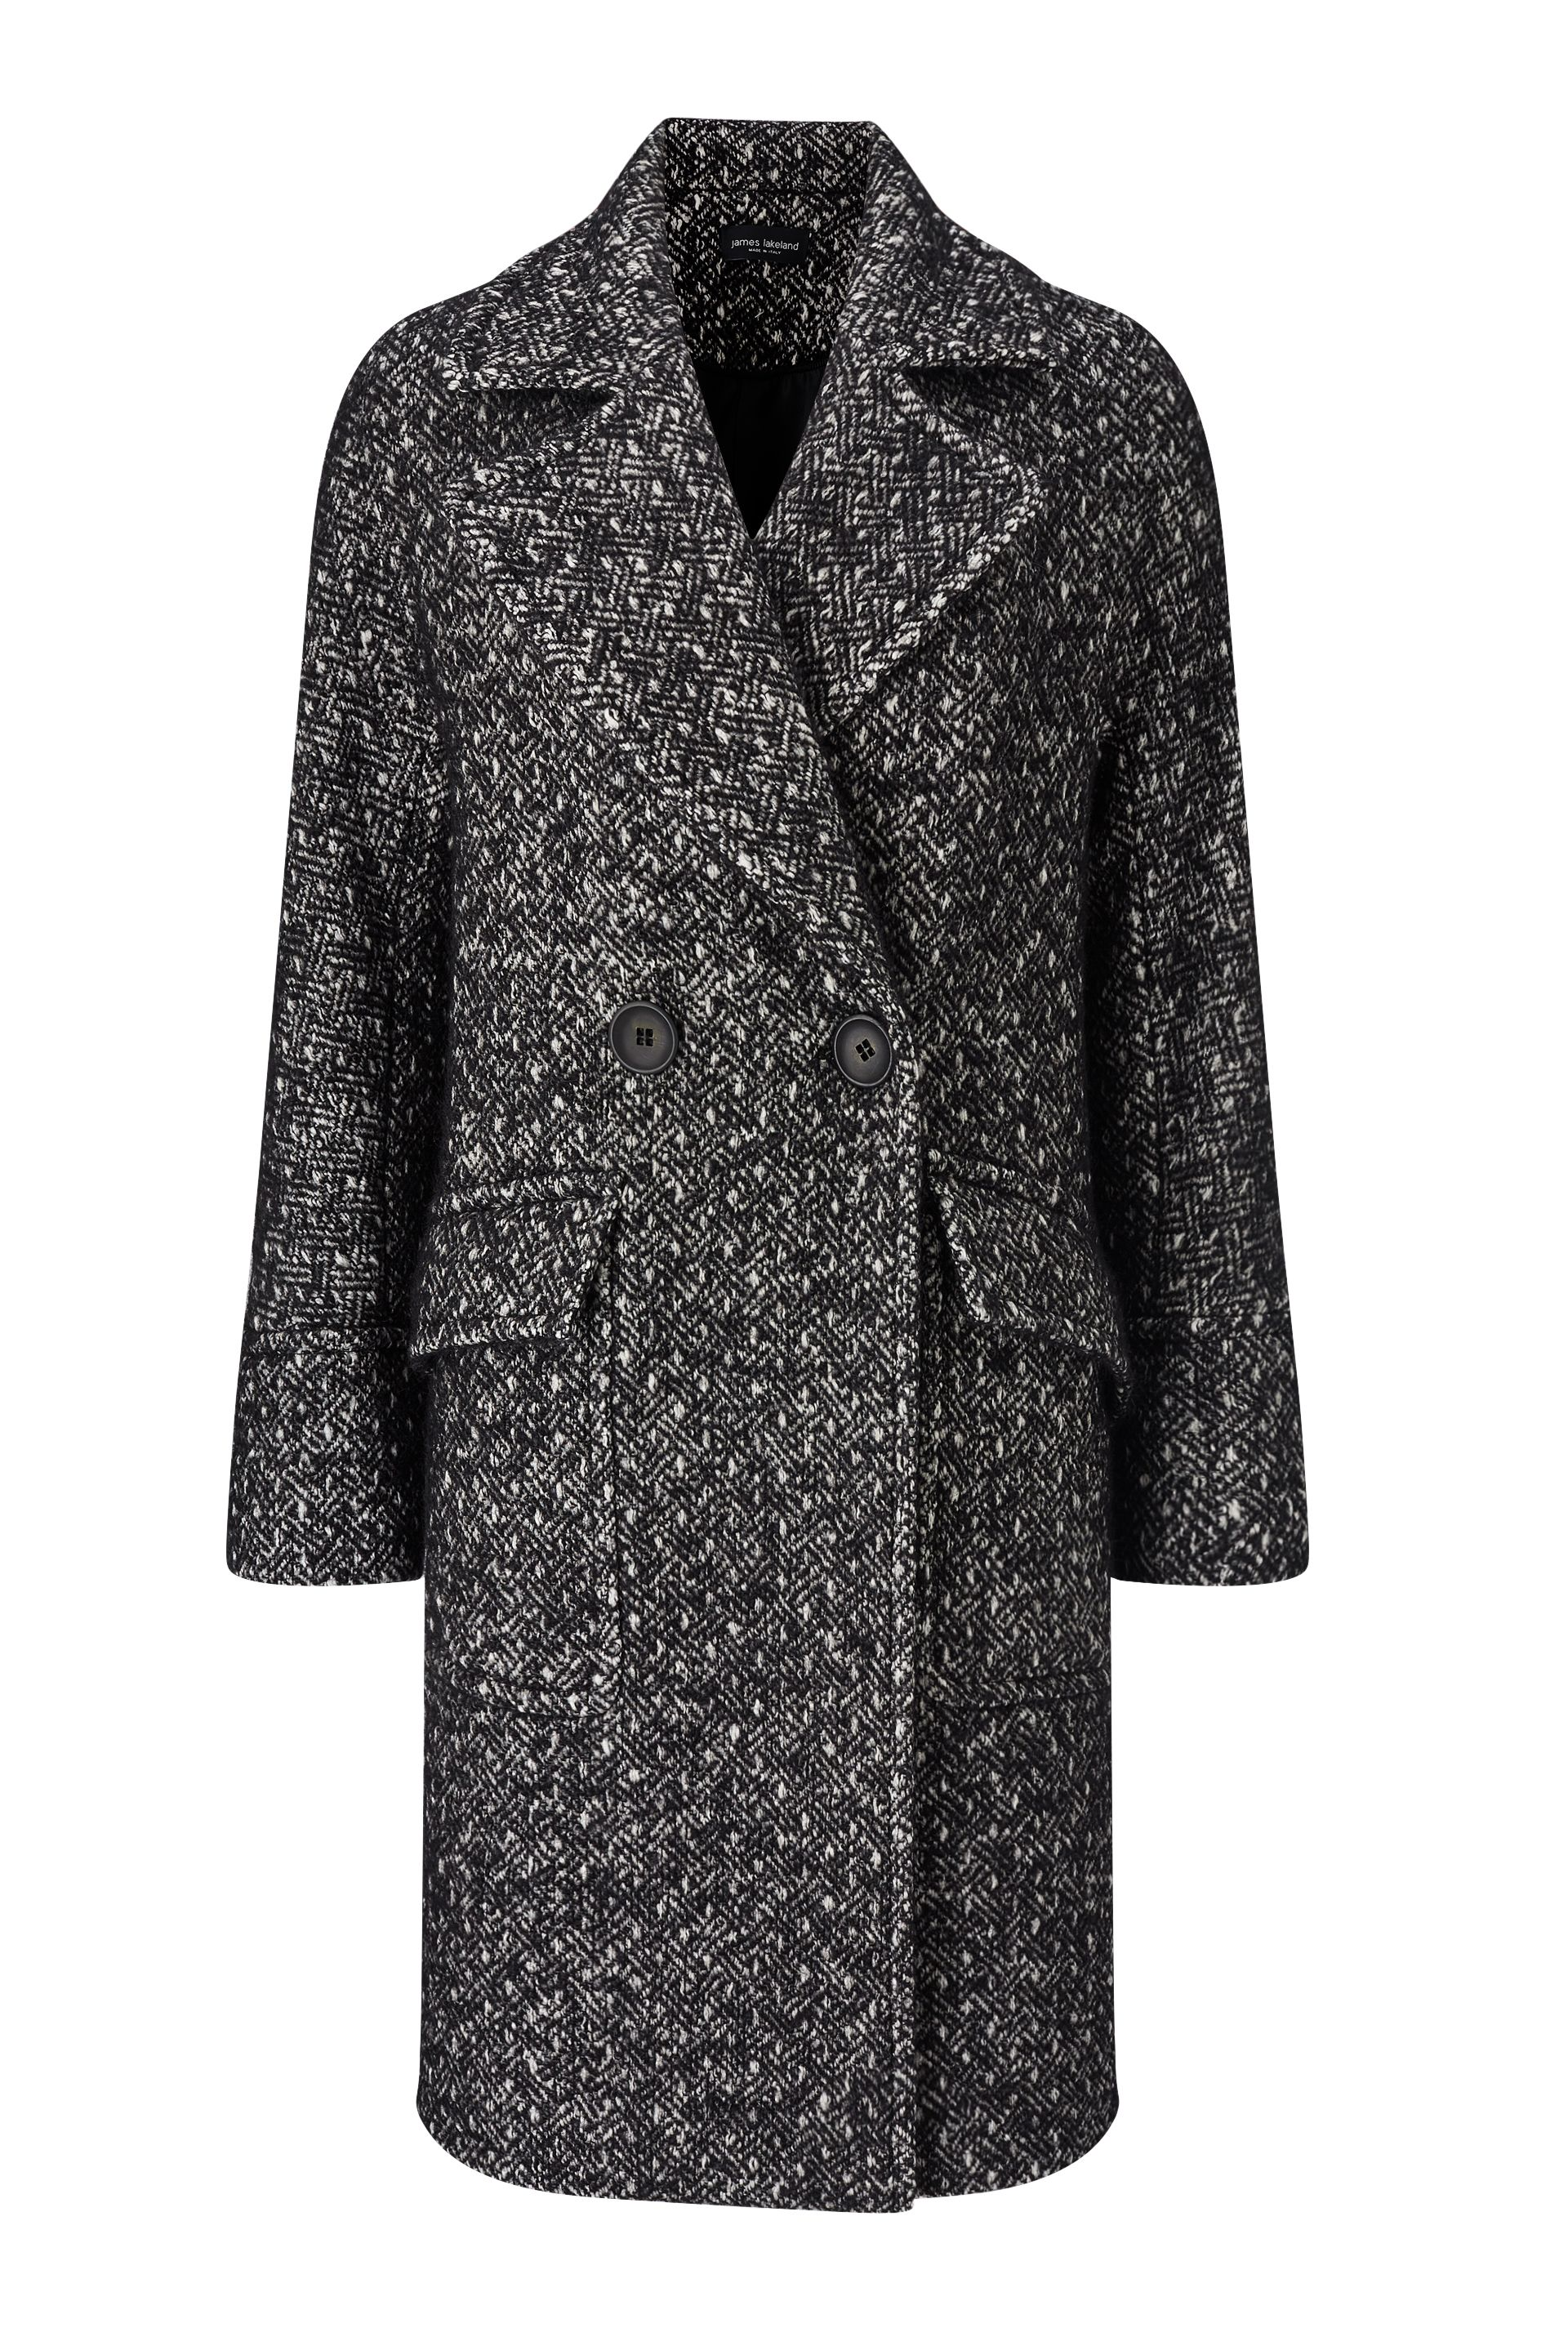 James Lakeland Double Breasted Drop Shoulder Coat Black